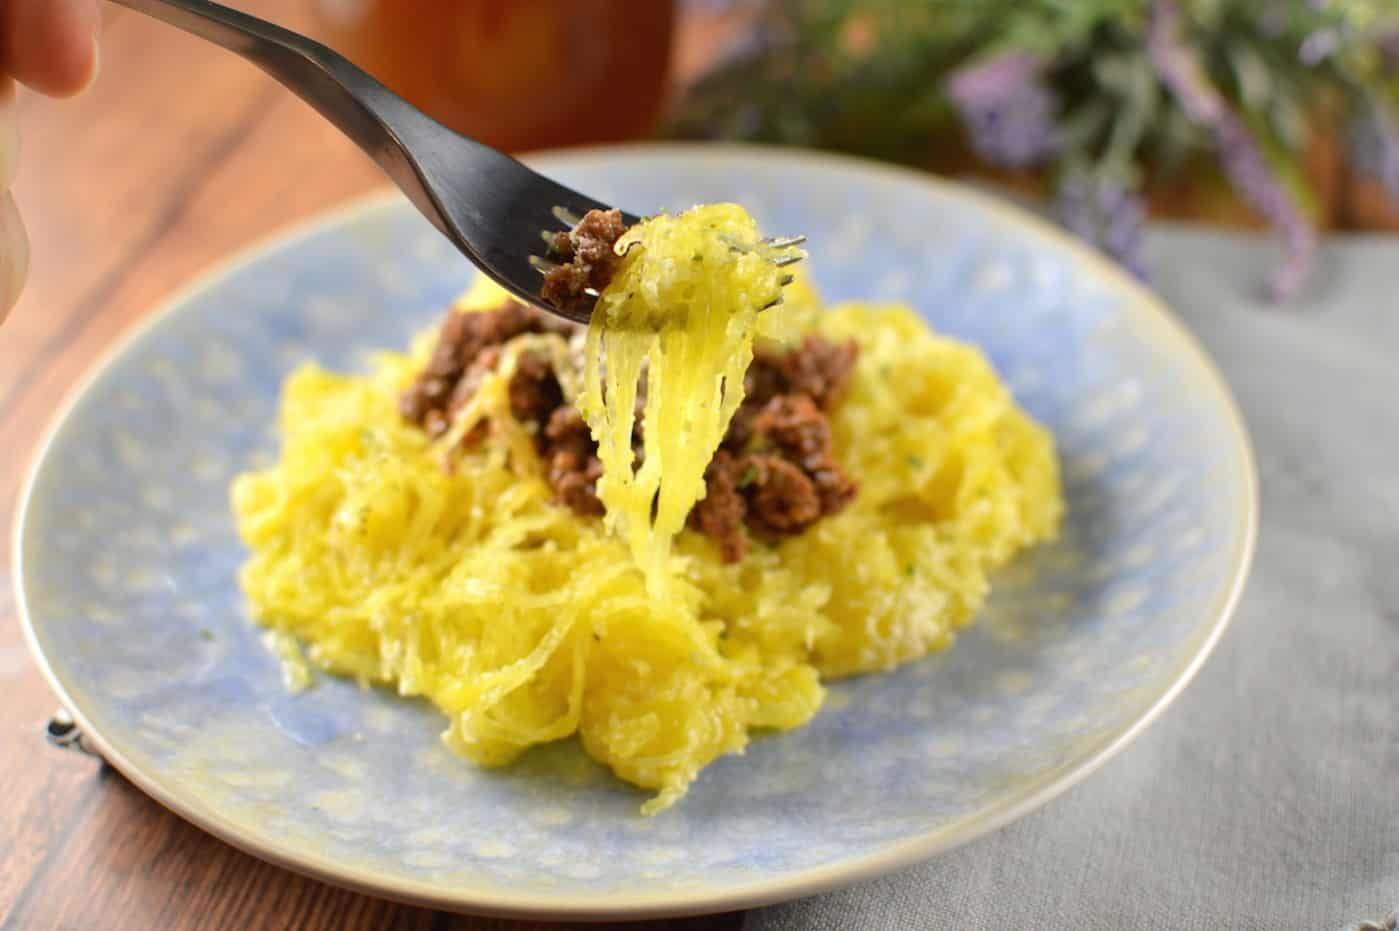 Make this yummy spaghetti squash recipe in an Instant Pot pressure cooker in a matter of minutes! The sauce and seasoning really make this delicious dinner.